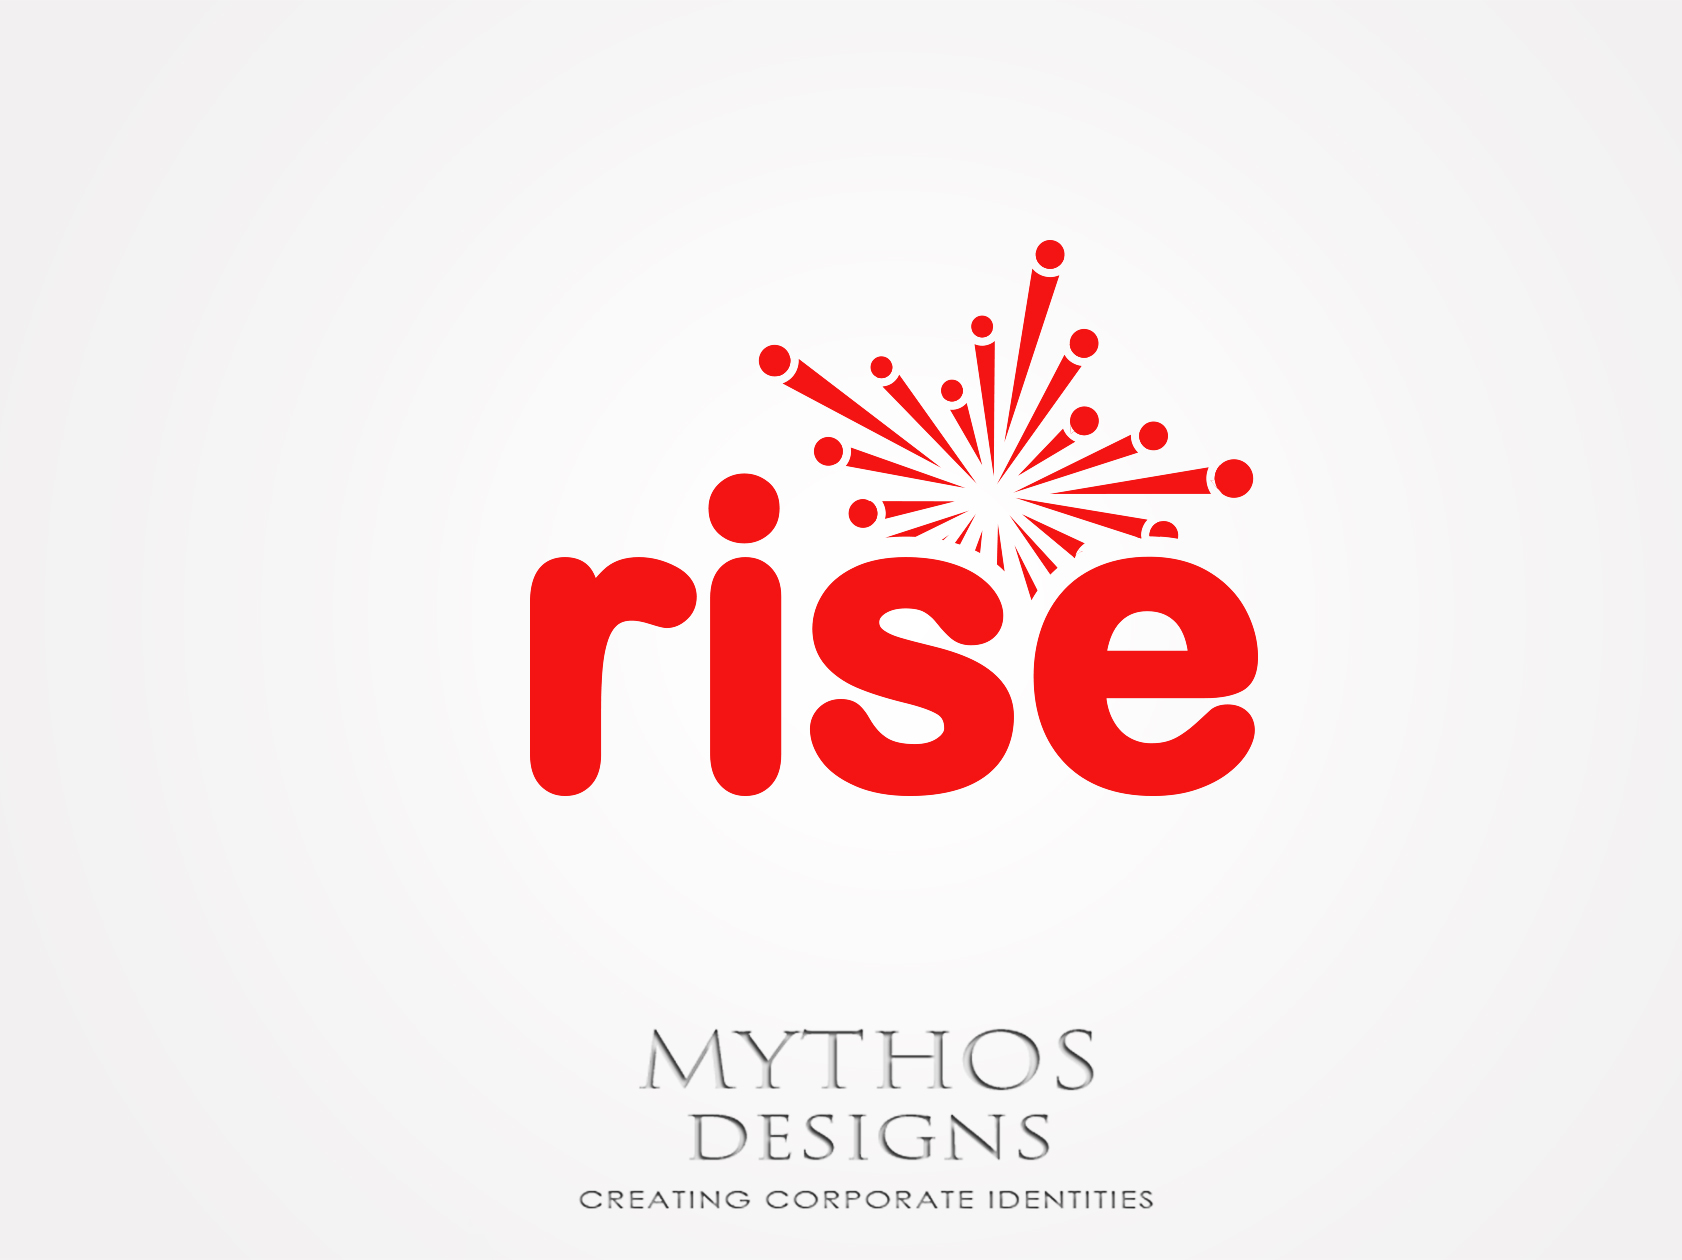 Logo Design by Mythos Designs - Entry No. 158 in the Logo Design Contest Imaginative Logo Design for Rise Tutoring Service.